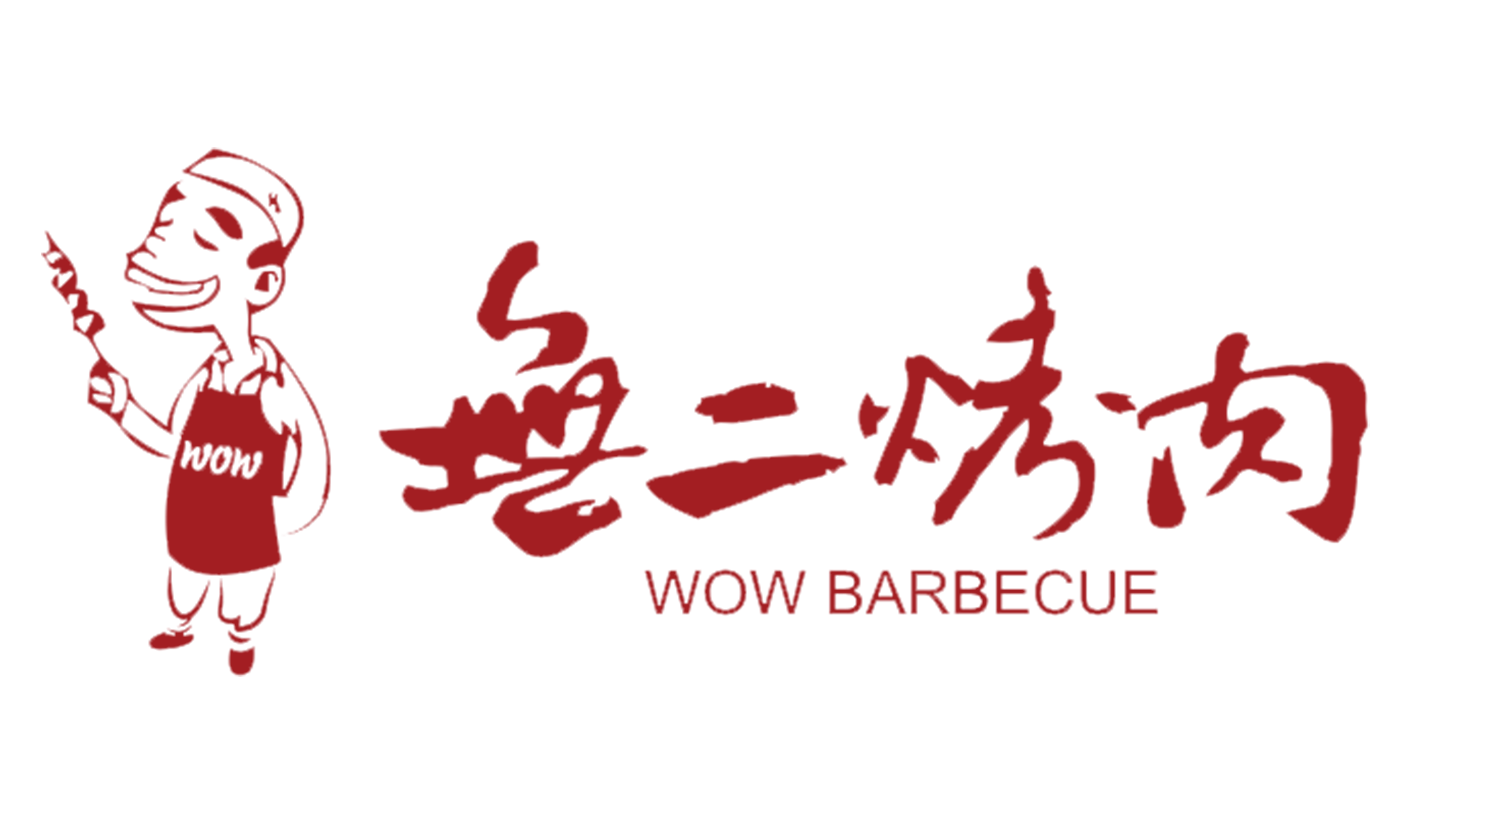 Wow clipart bright side. Barbecue our food locations